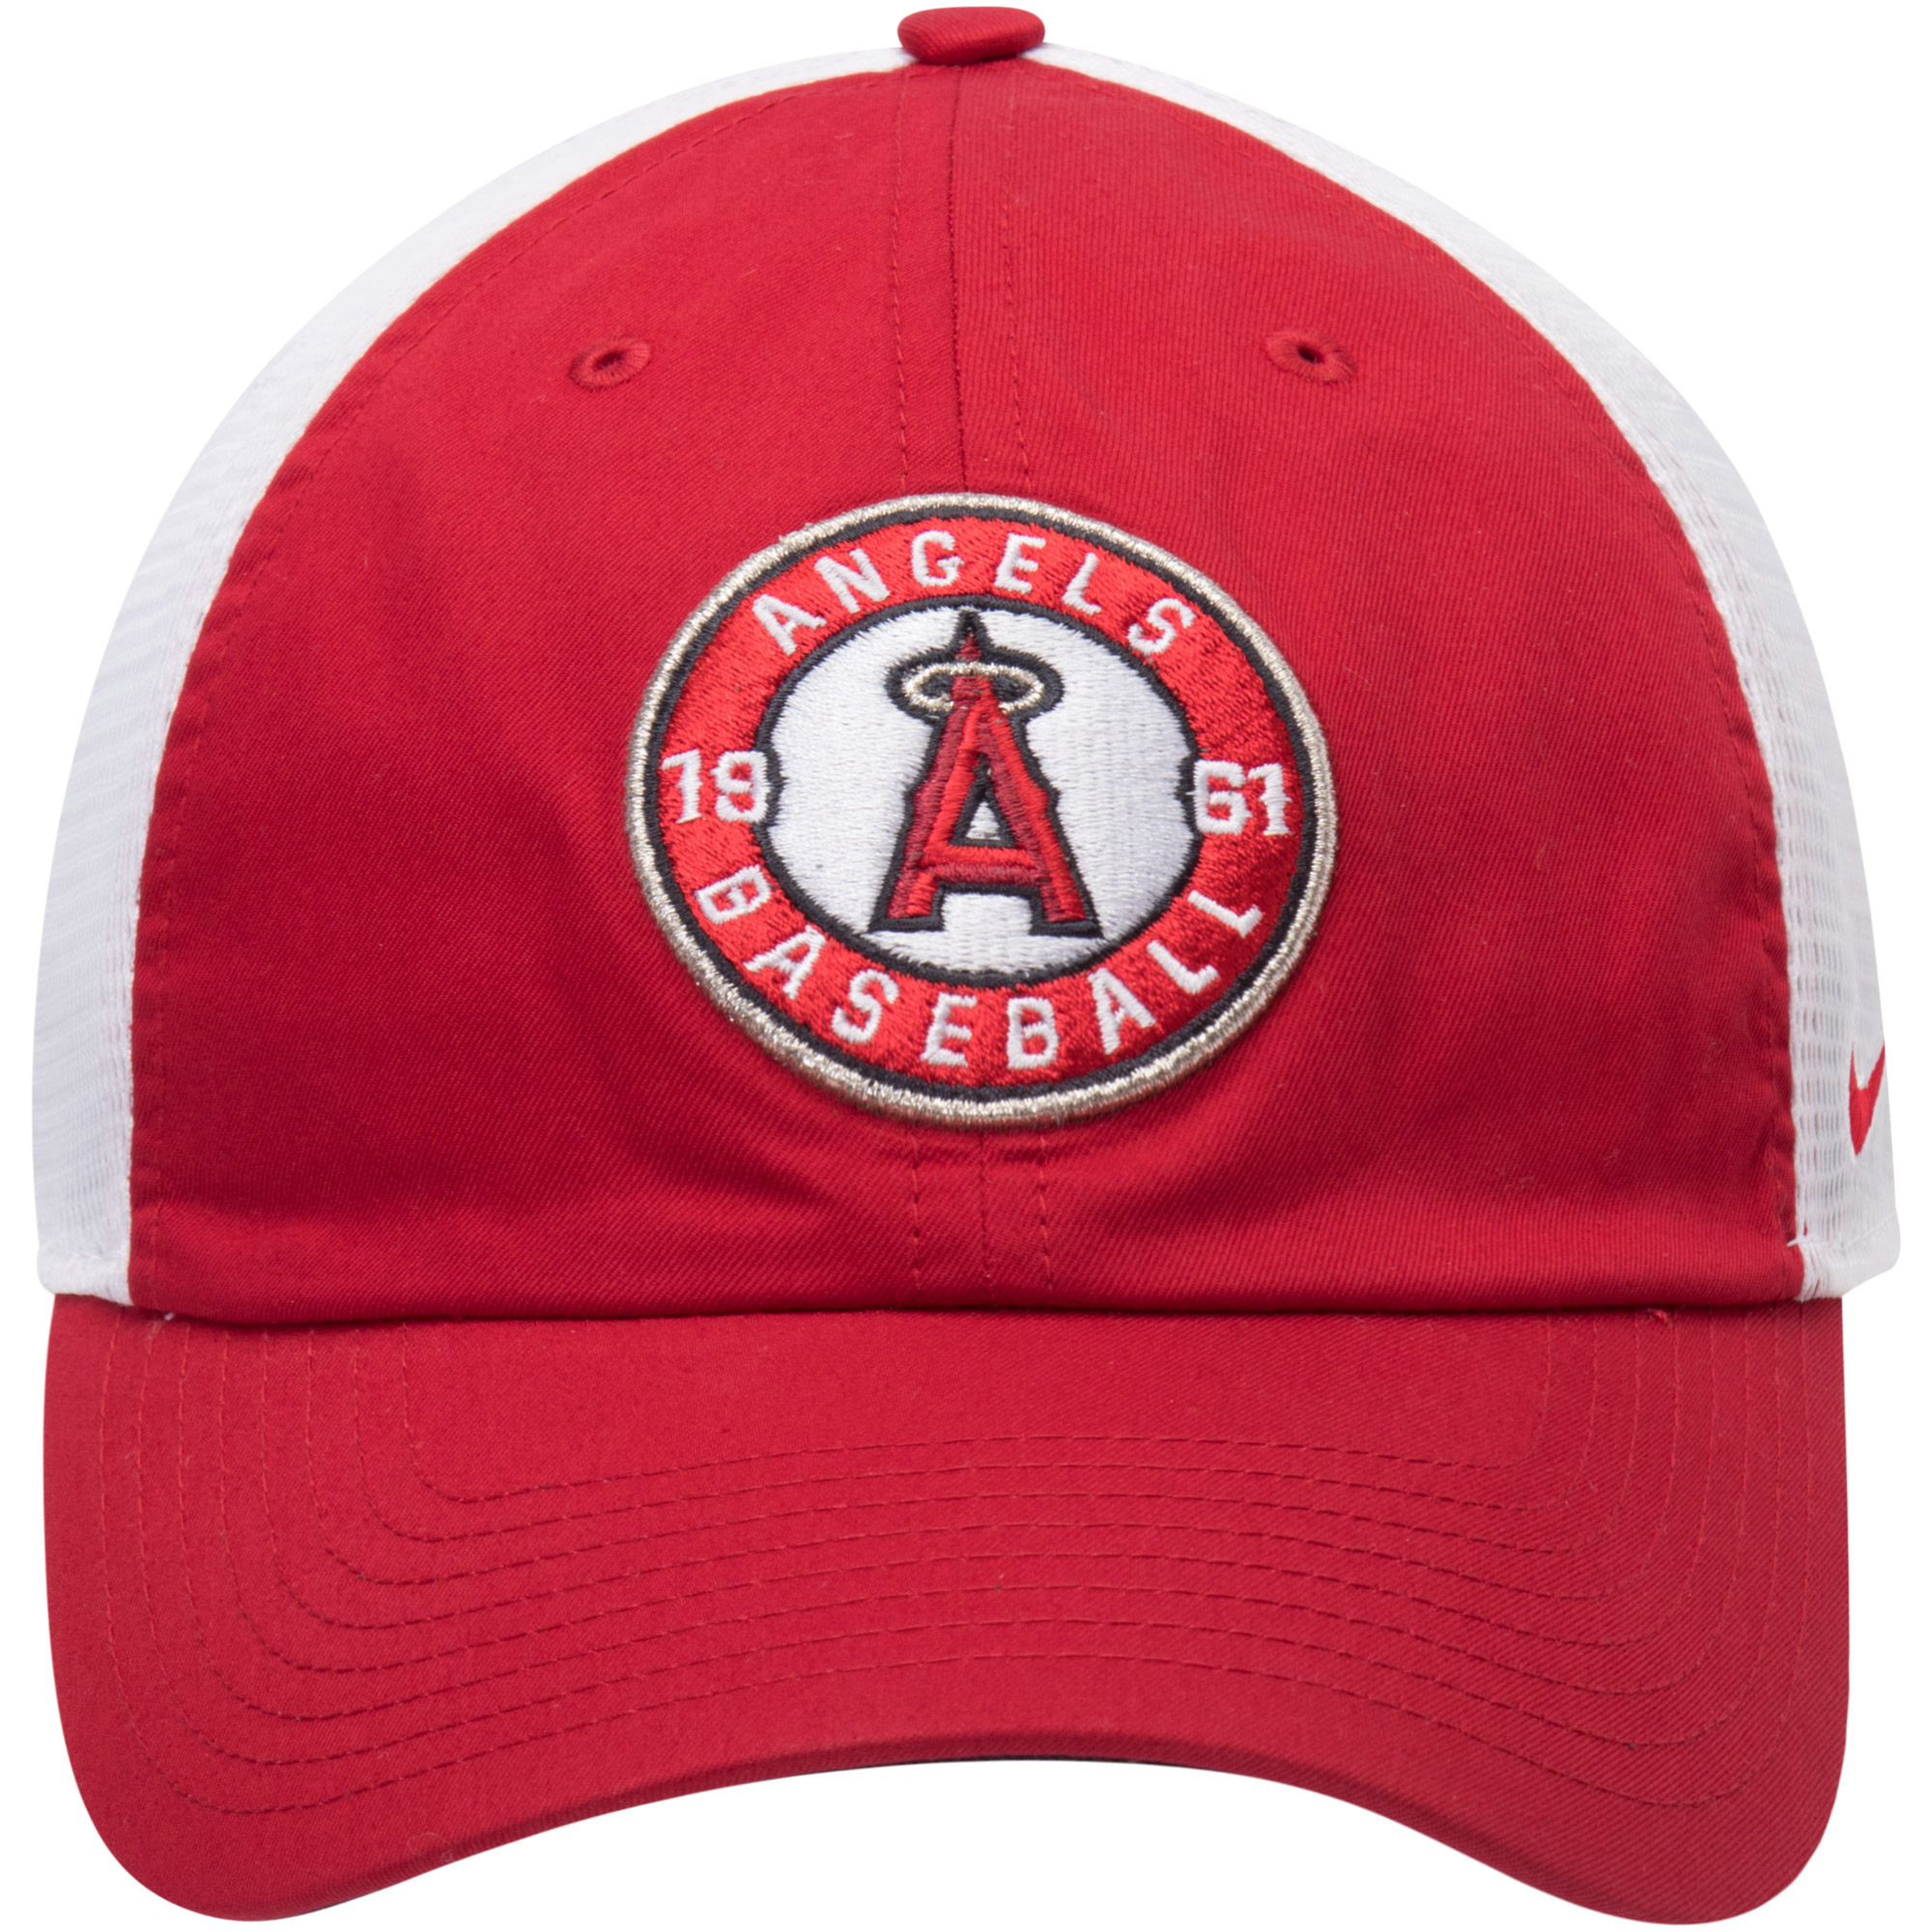 43a1c6fa0e7c4 Los Angeles Angels Nike Heritage 86 Fabric Mix Performance Adjustable Hat -  Red White - OSFA - Walmart.com